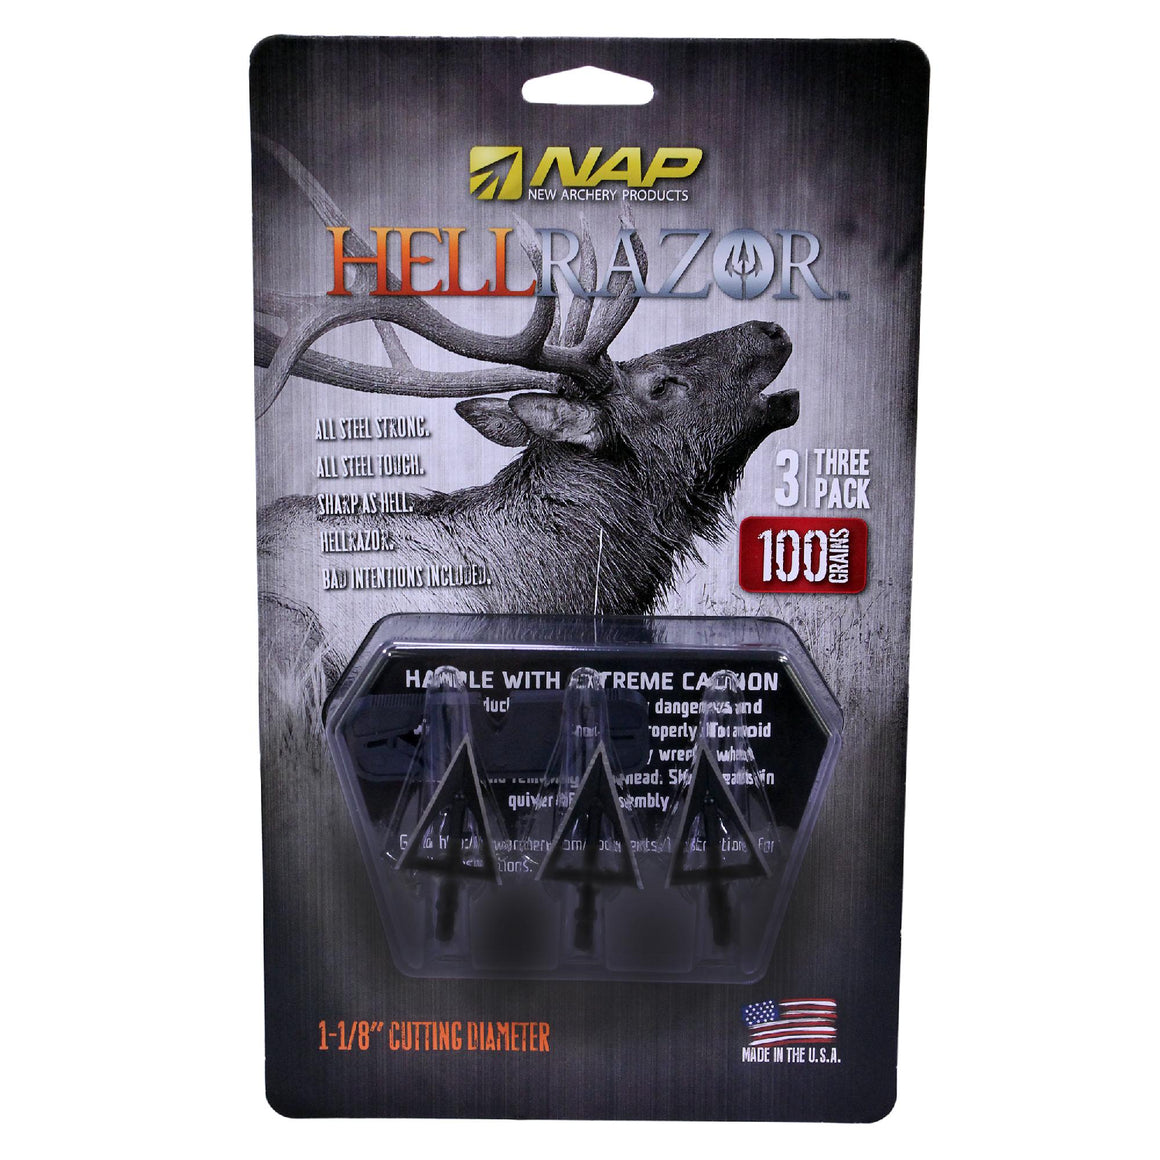 "Fixed Broadhead - Hellrazor, 3 Blades, 100 Grains, 1 1-8"" Cutting Diameter, Per 3"